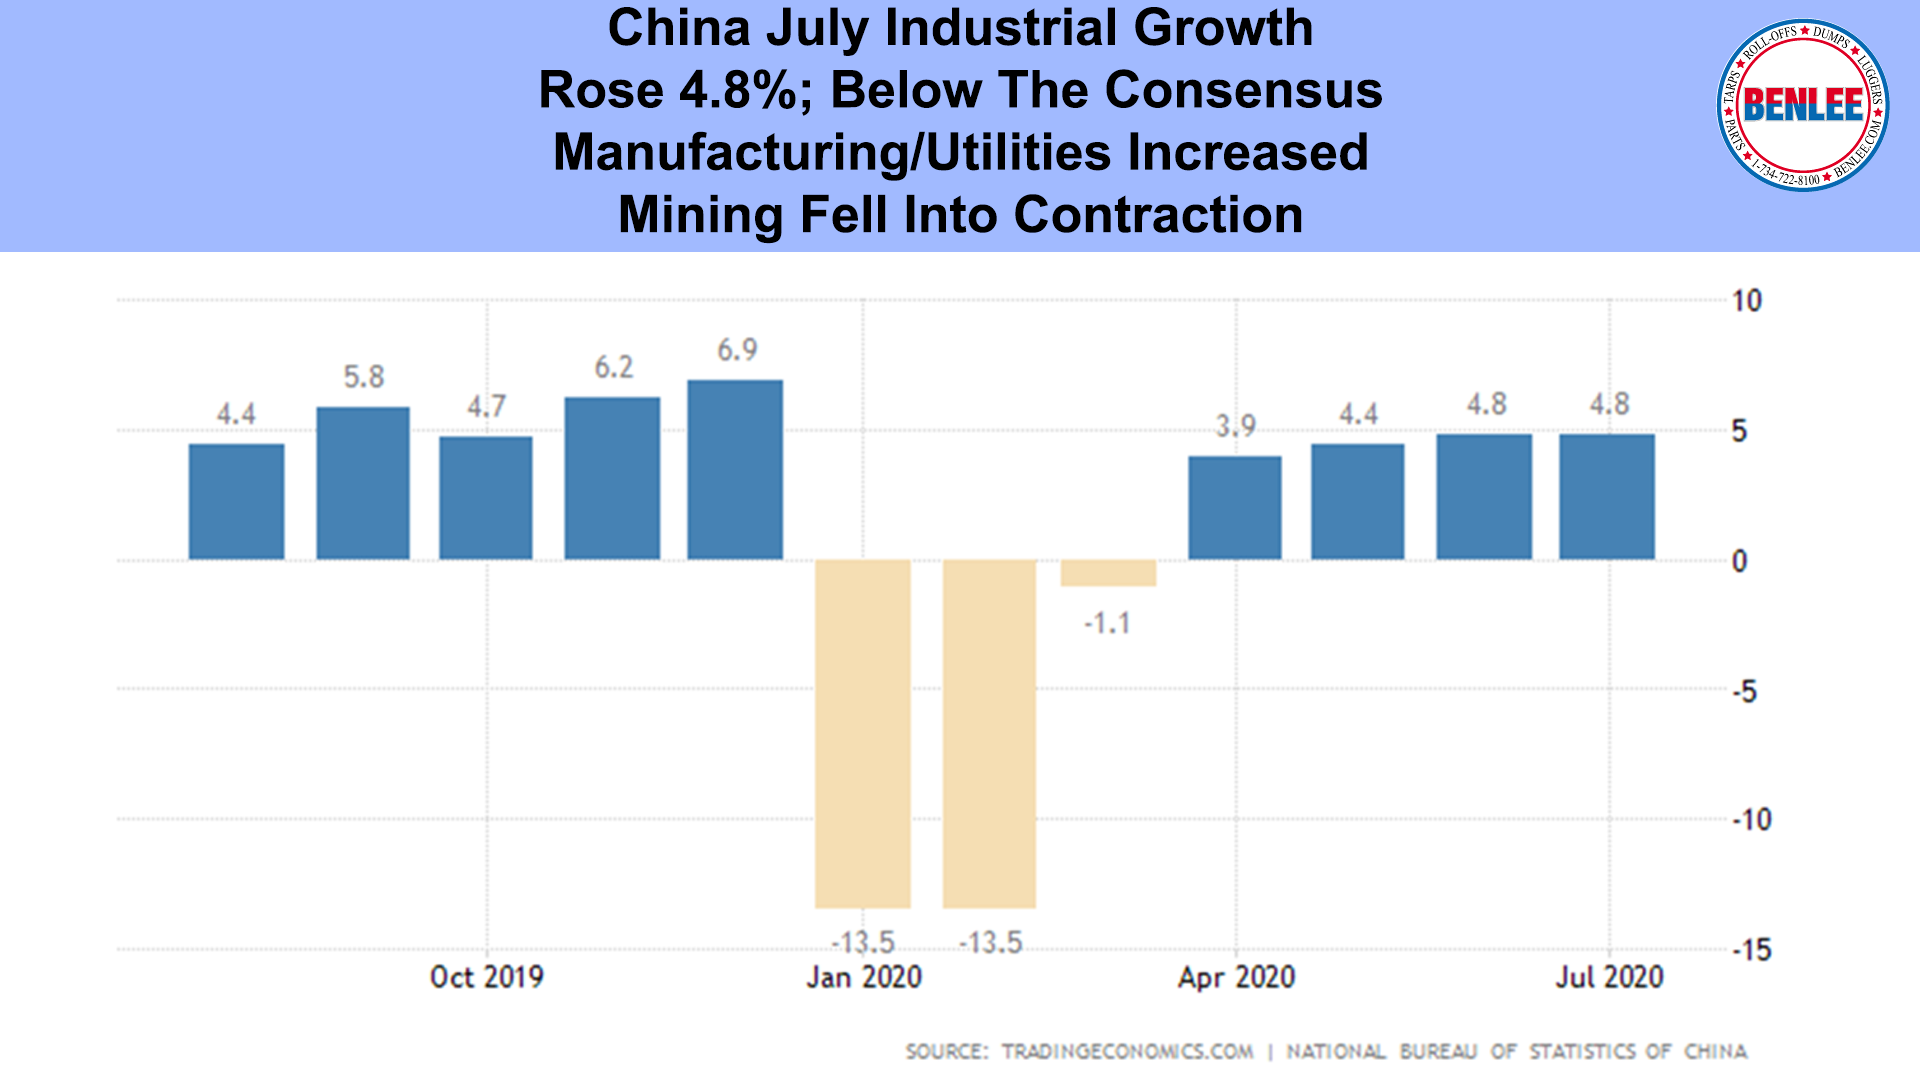 China July Industrial Growth